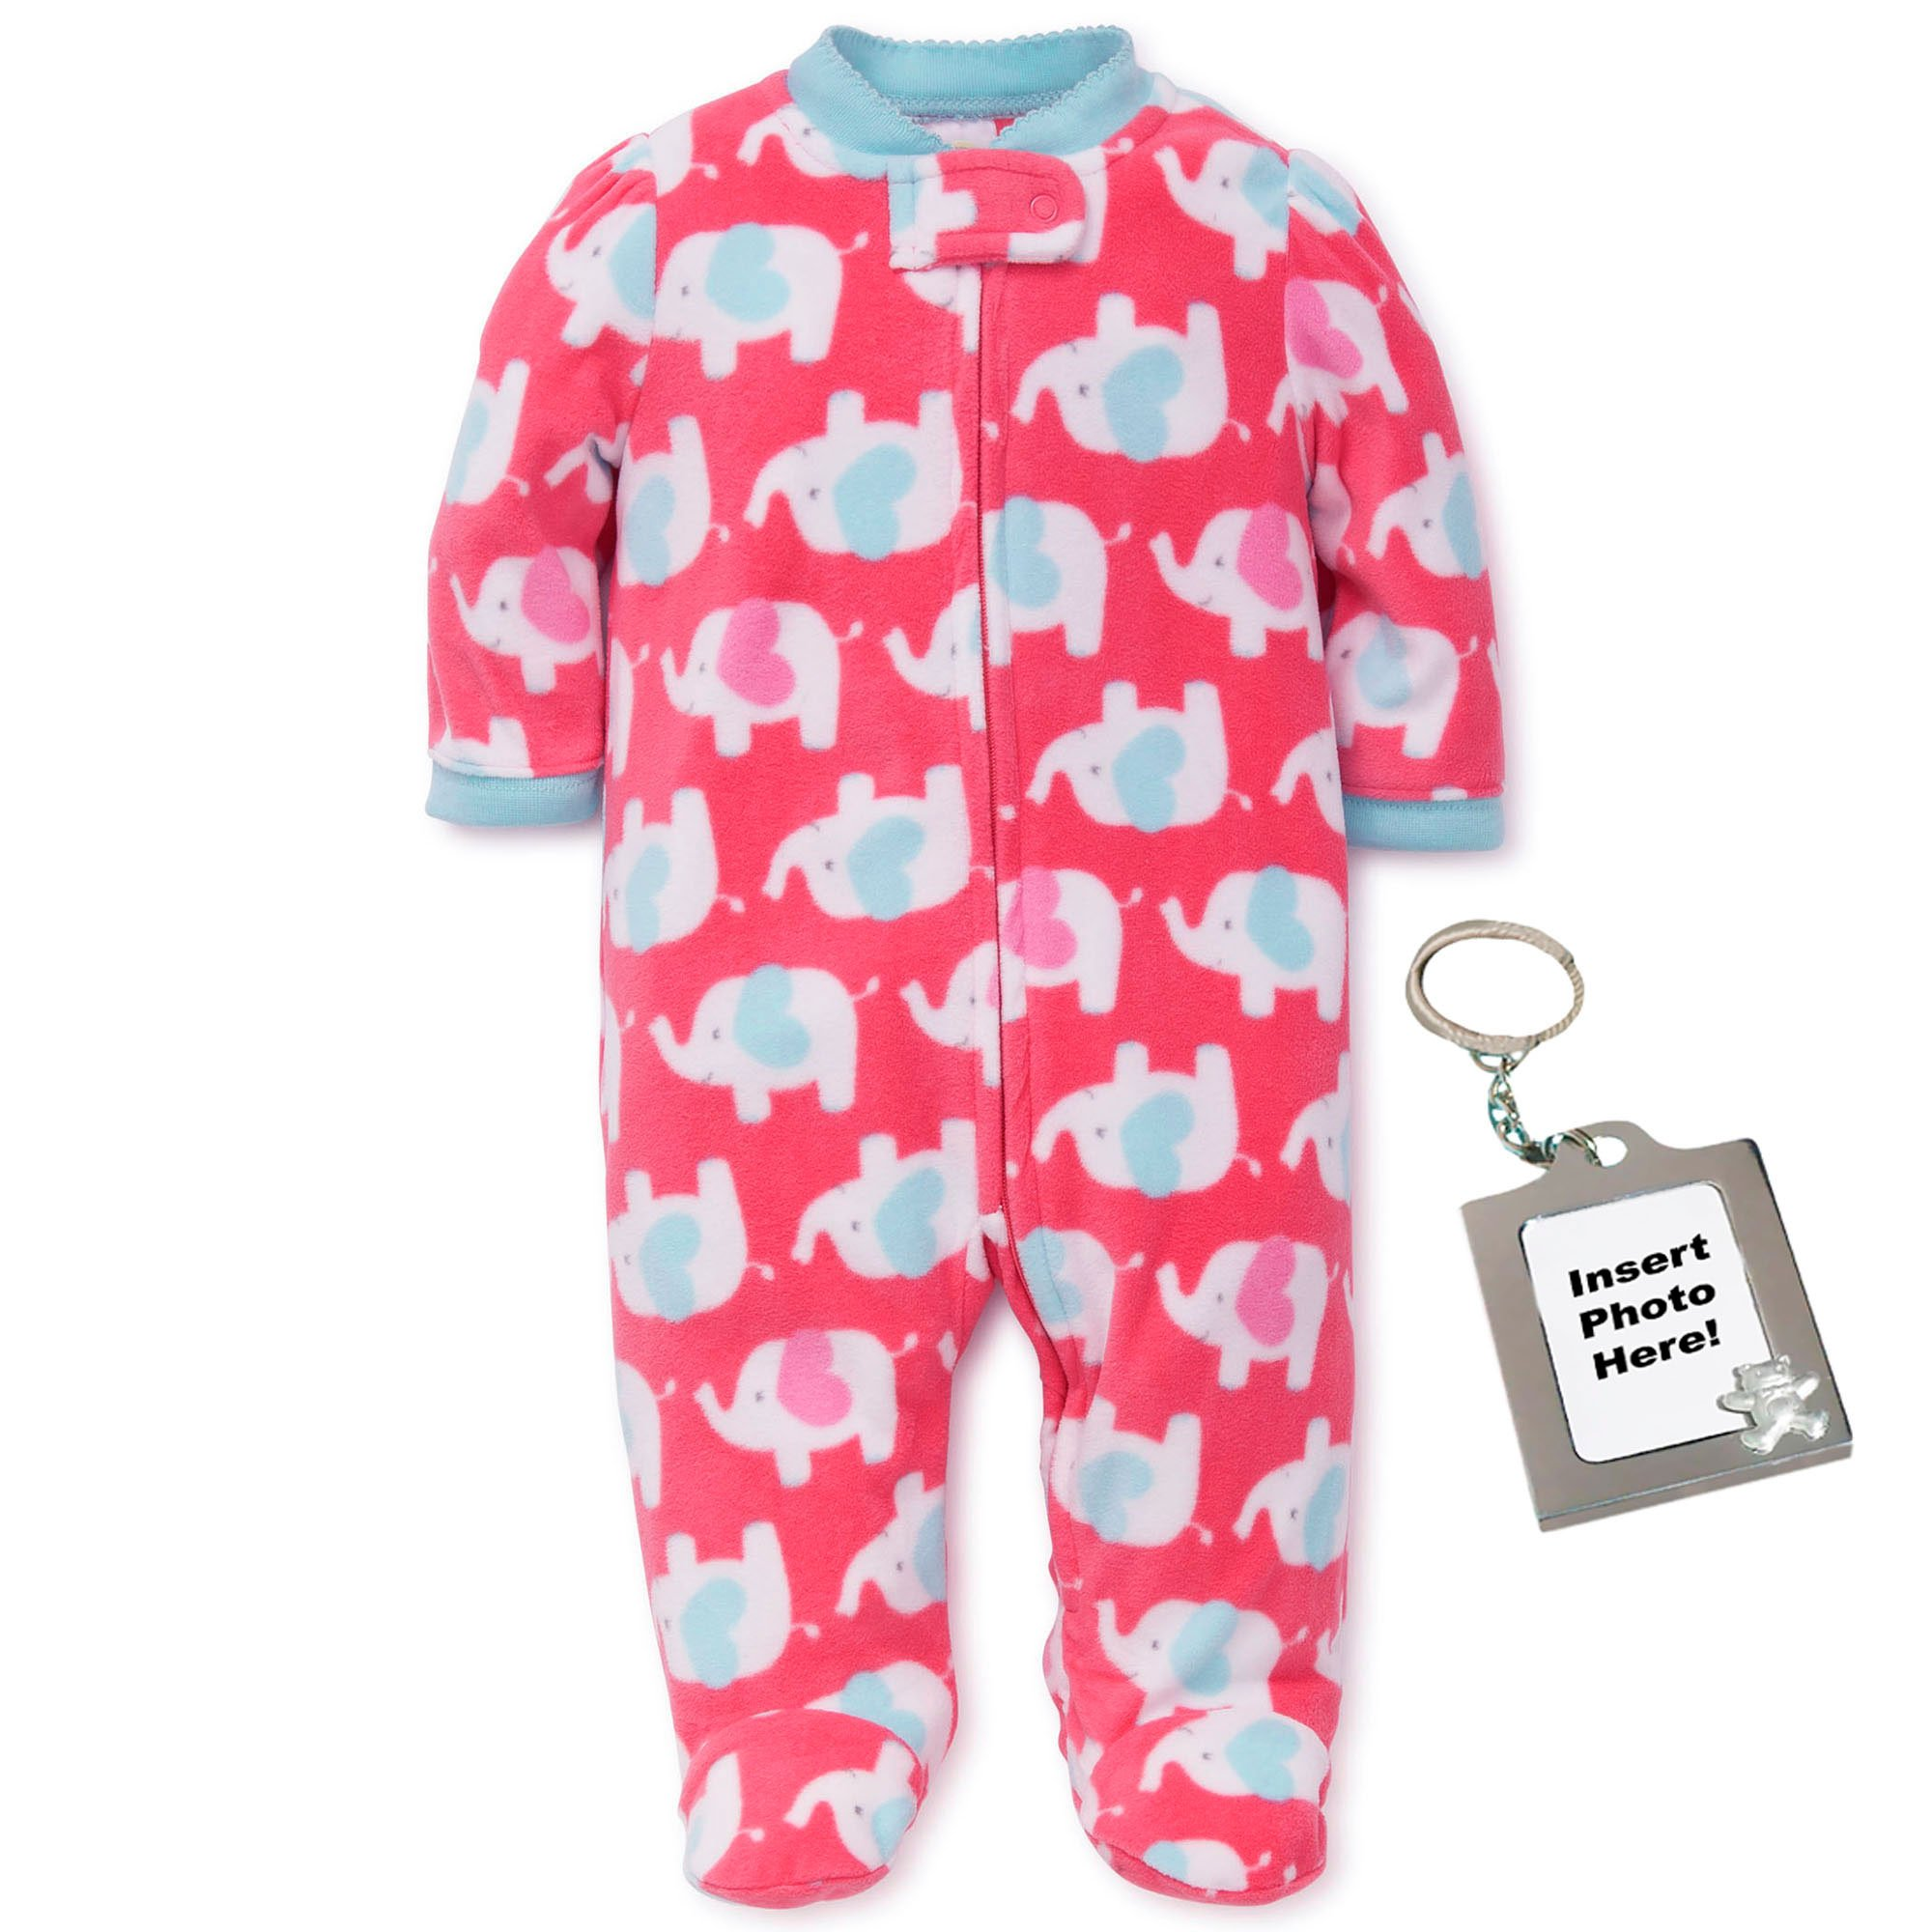 972e89657c Amazon.com  Little Me Heart Elephant Blanket Sleeper Girls Winter Footed  Pajamas-Pink-18 Mth  Baby